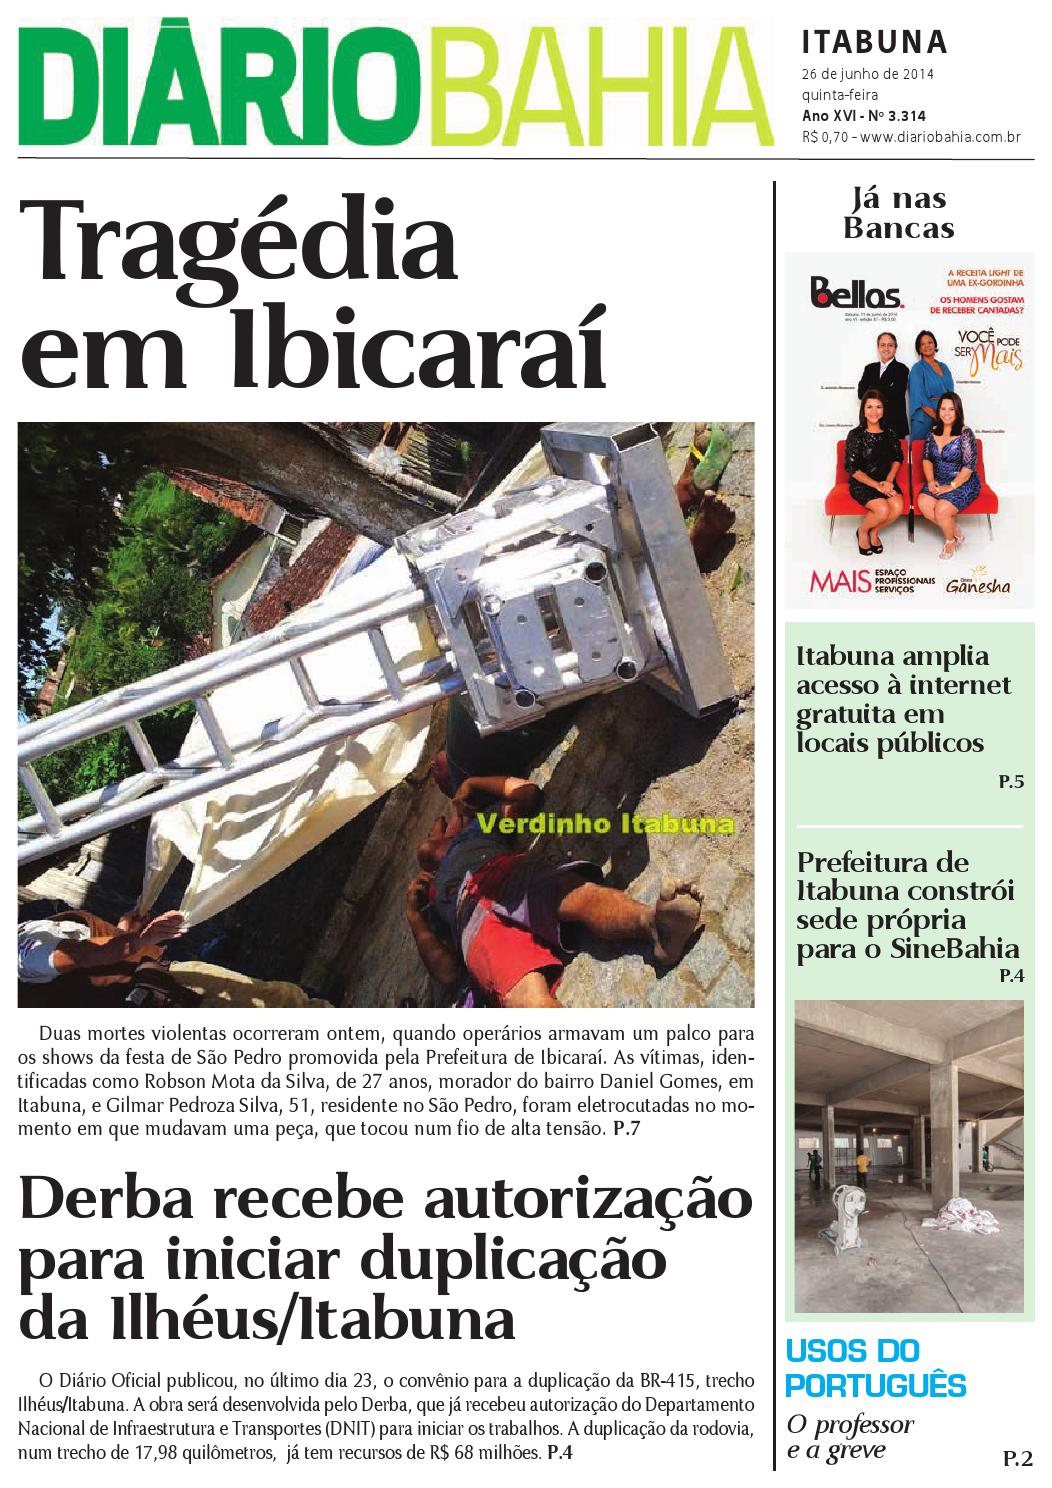 26 06 2014 by Diario Bahia - issuu 53f8cbe899